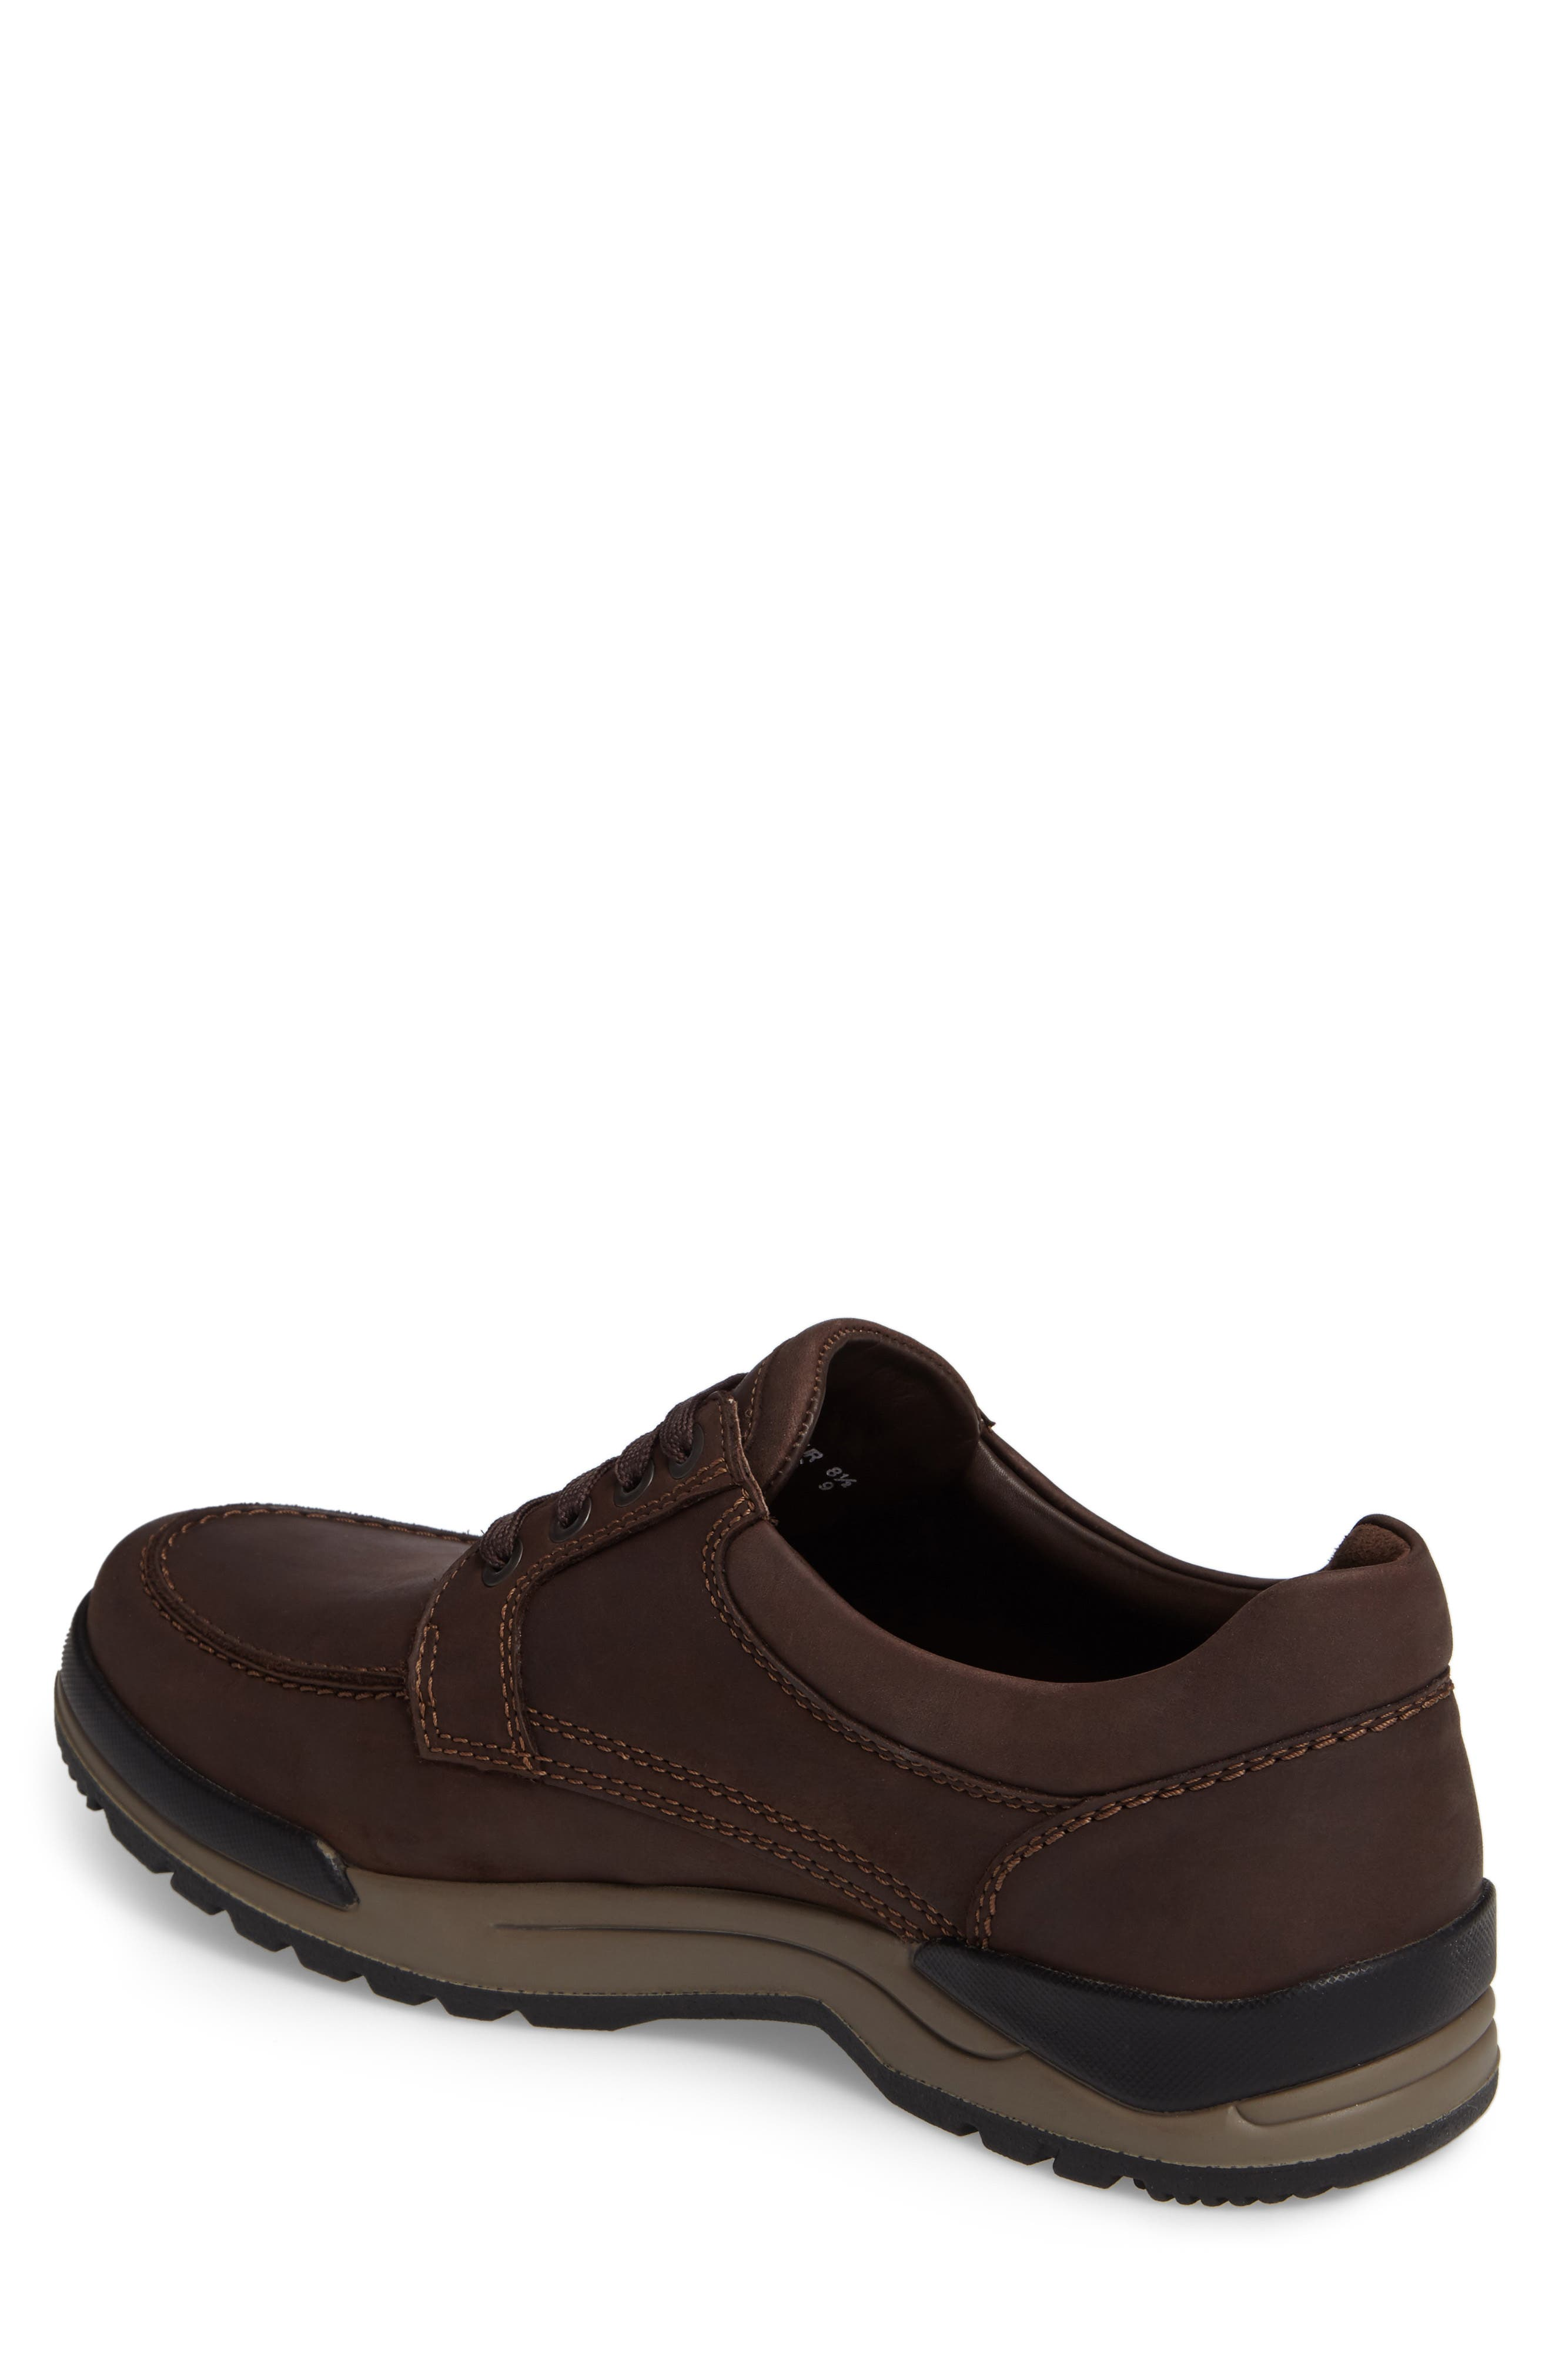 MEPHISTO, Charles Waterproof Walking Shoe, Alternate thumbnail 2, color, DARK BROWN